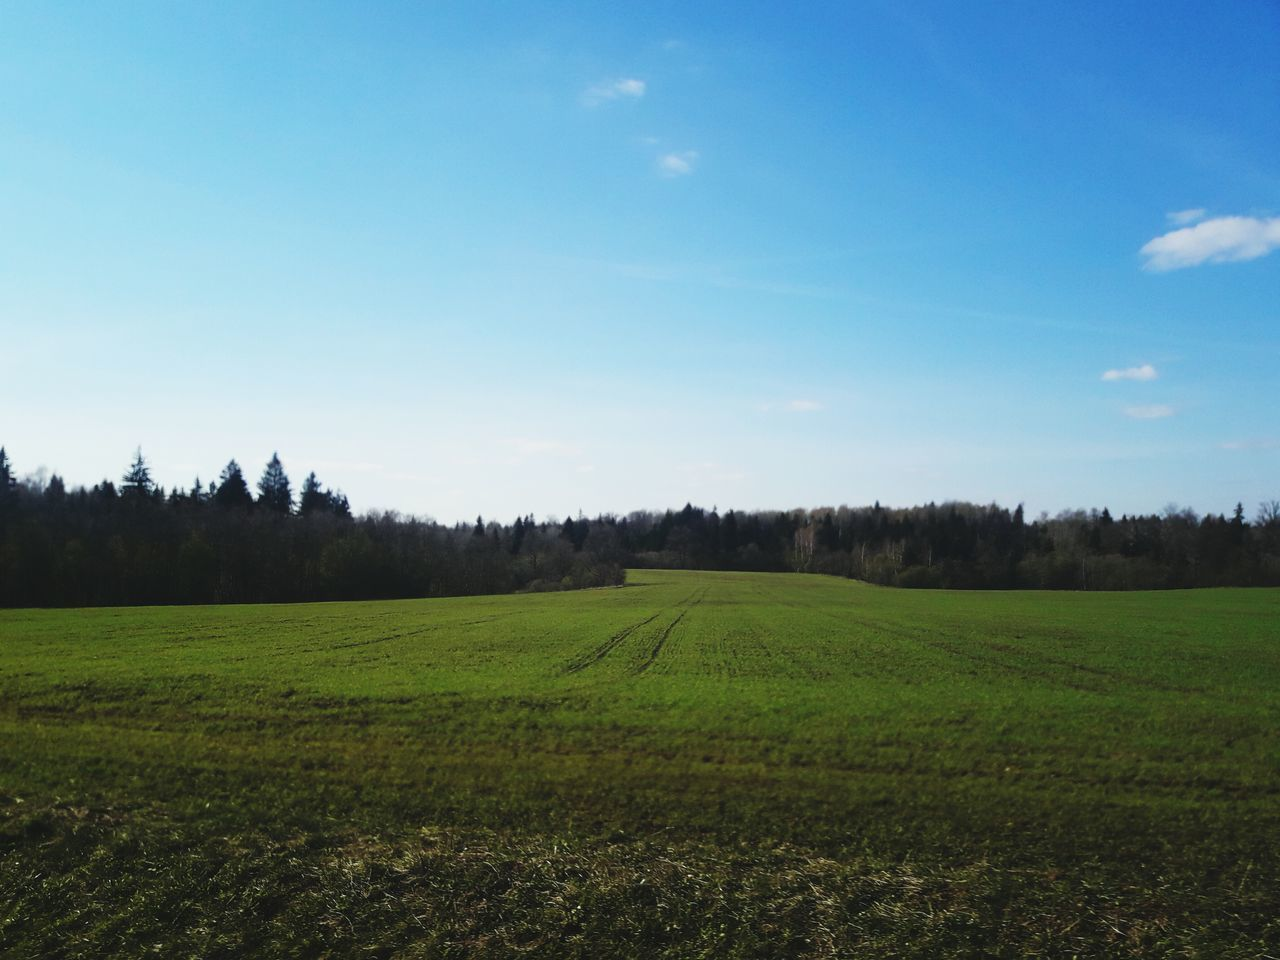 tranquil scene, tranquility, field, beauty in nature, landscape, nature, scenics, tree, no people, green color, agriculture, growth, grass, sky, day, outdoors, rural scene, clear sky, scenery